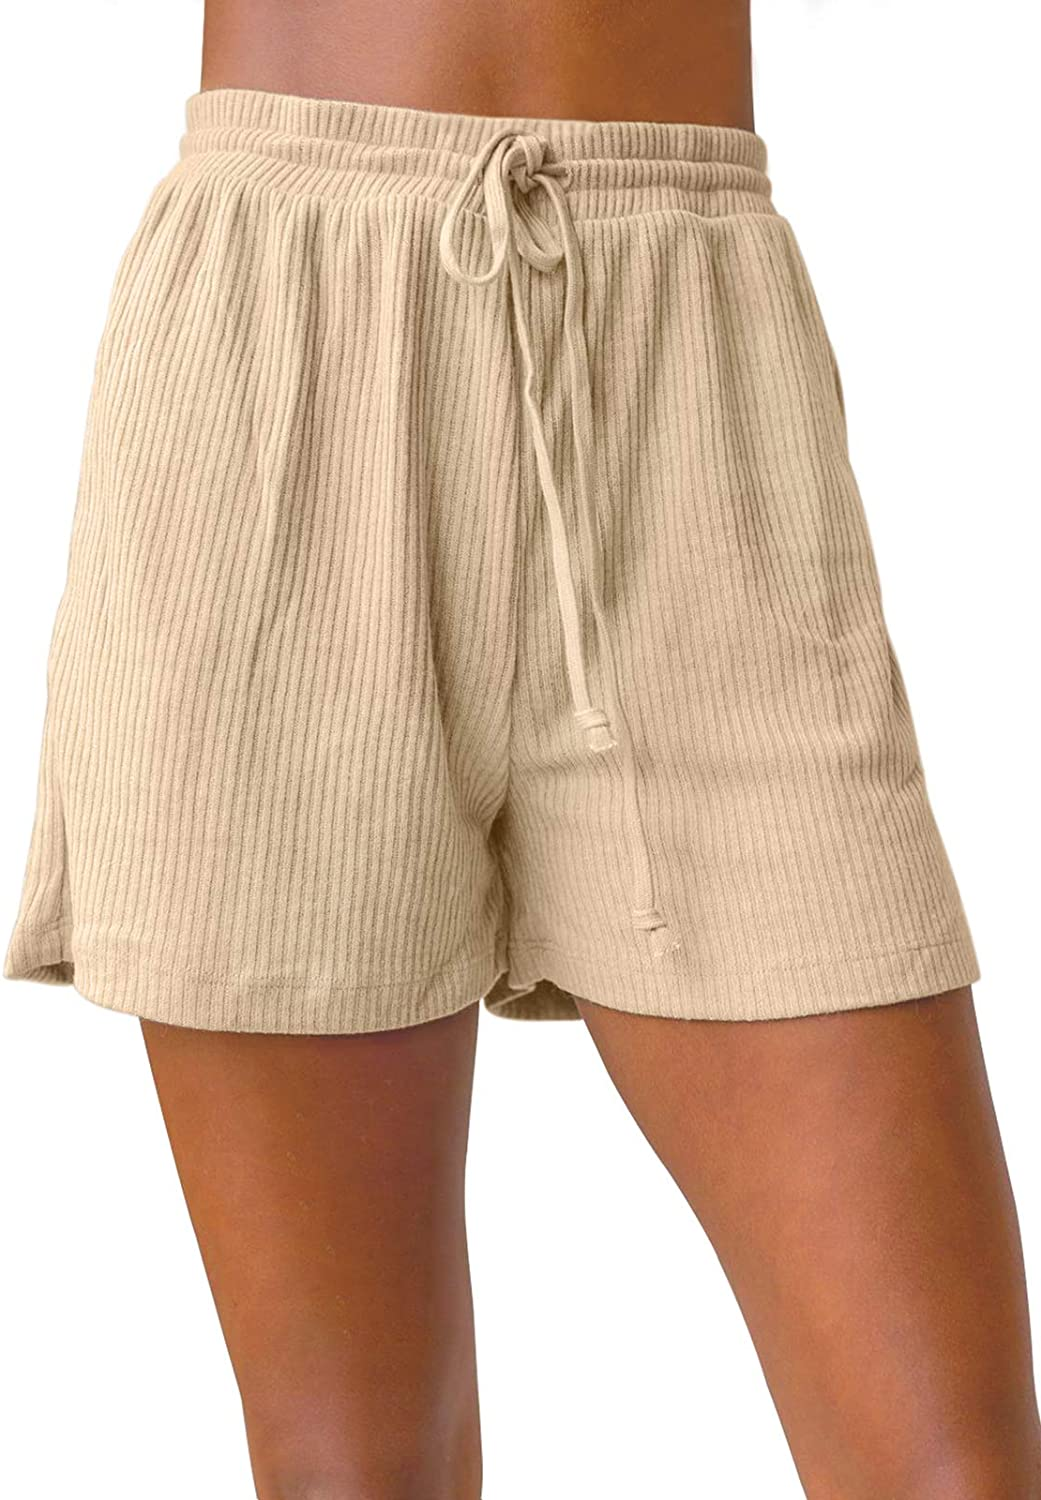 ZESICA Women's Summer Ribbed Knit Elastic Drawstring Waist Casual Beach Shorts with Pockets